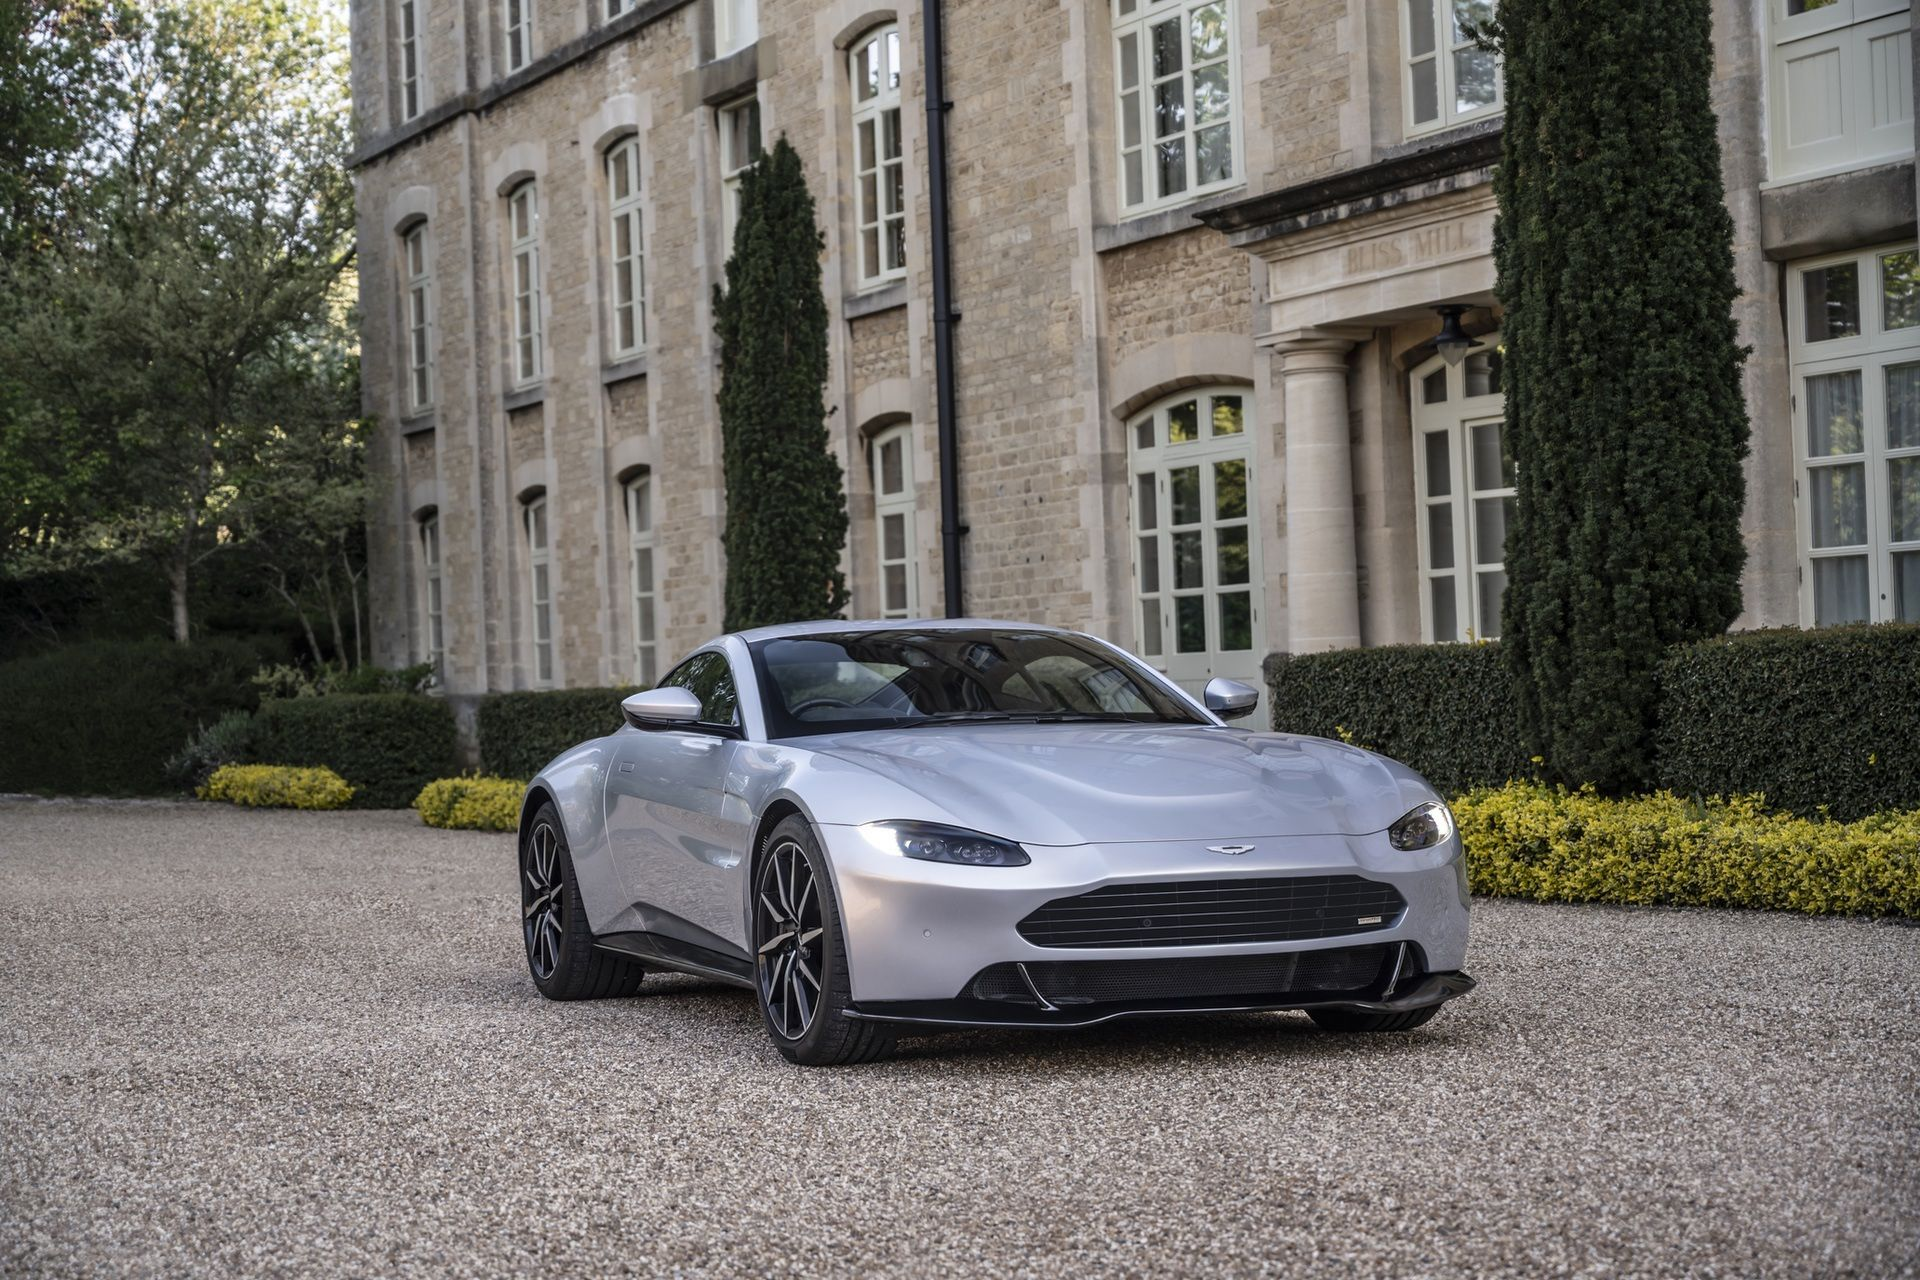 7.-Revenant-Automotive-Aston-Martin-Vantage-bumper-with-entire-car